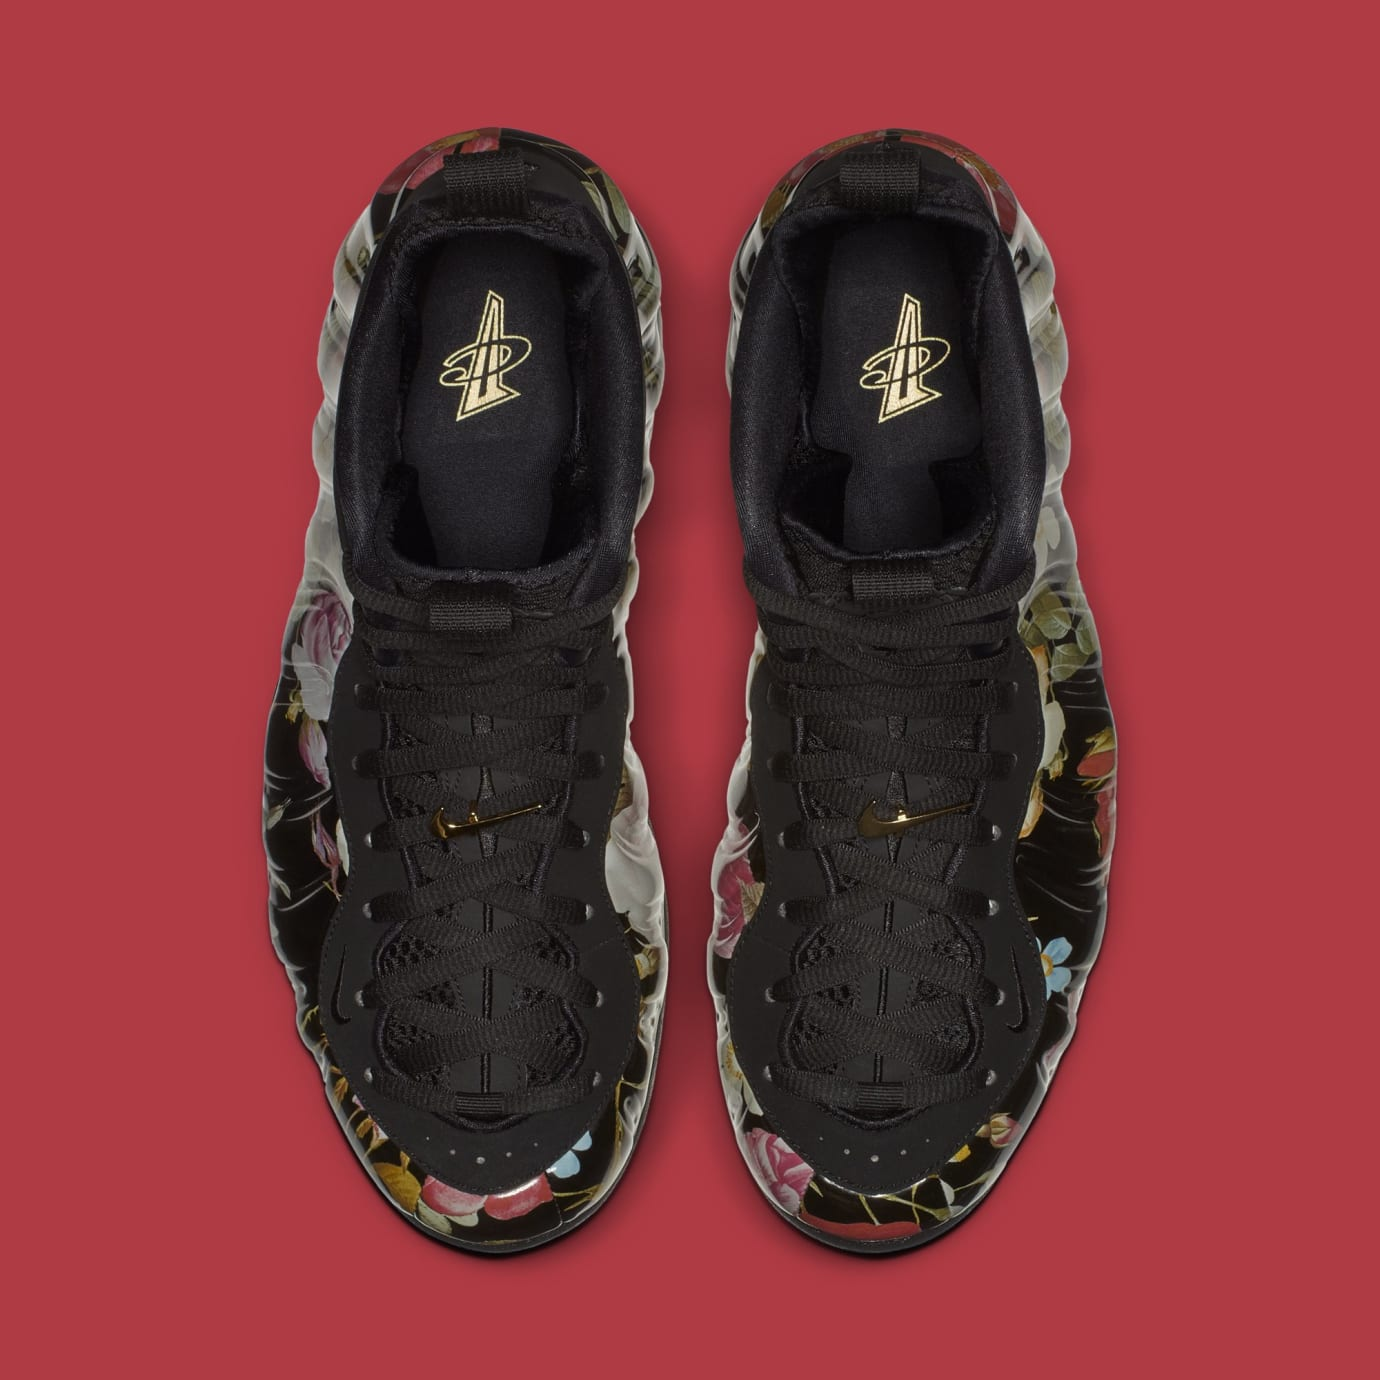 a36370ac045c6 Image via Nike Nike Air Foamposite One  Valentine s Day Floral  314996-012 ( Top)